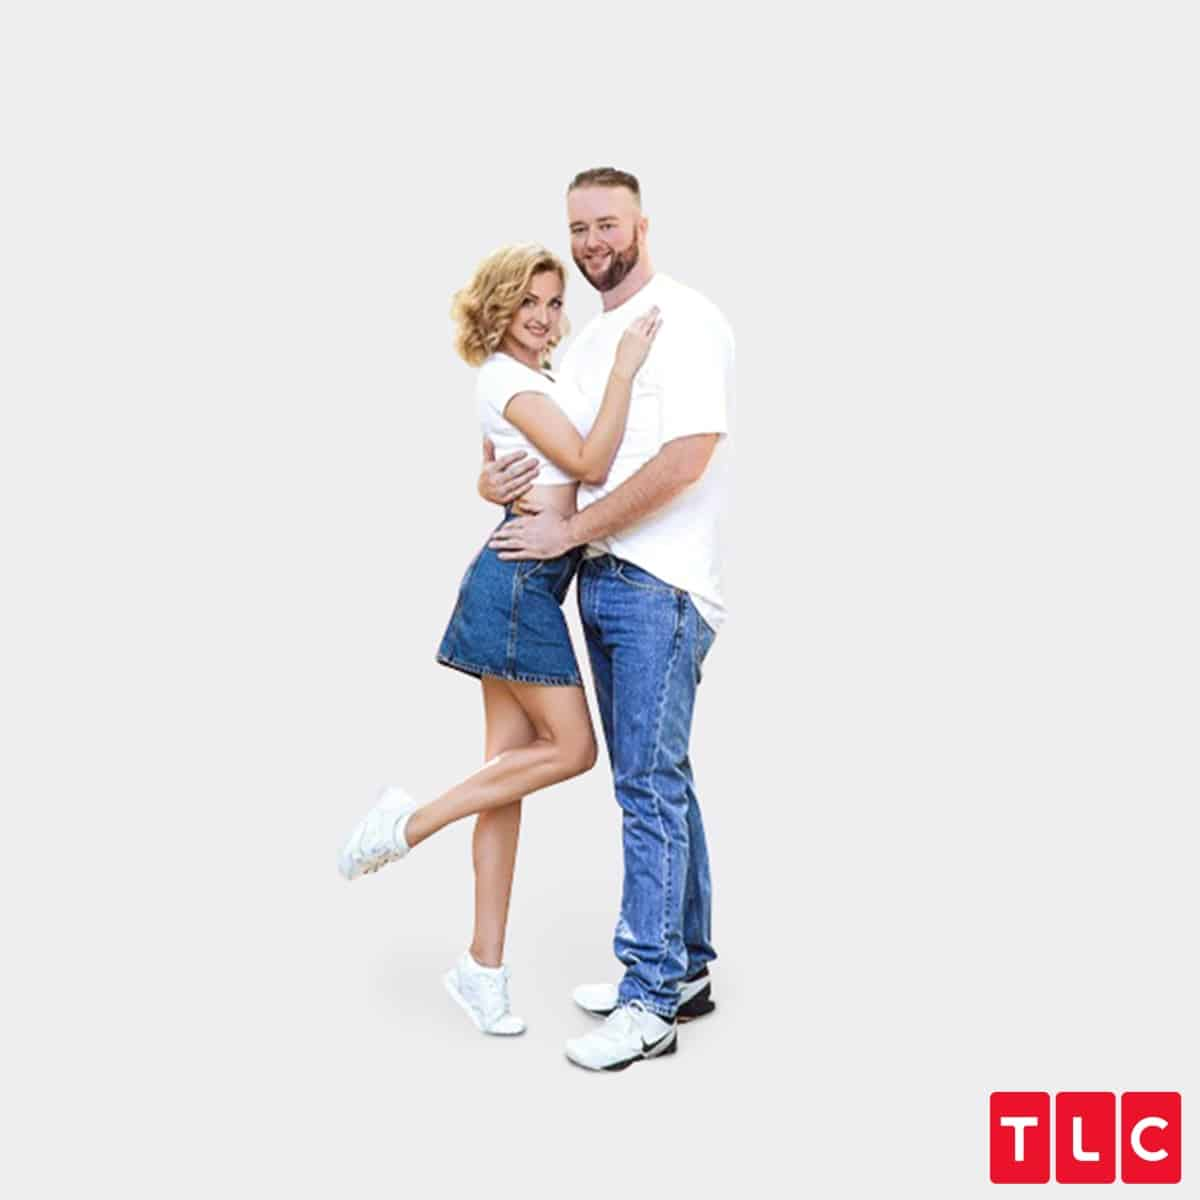 Natalie and Mike on Season 7 of 90 Day Fiance